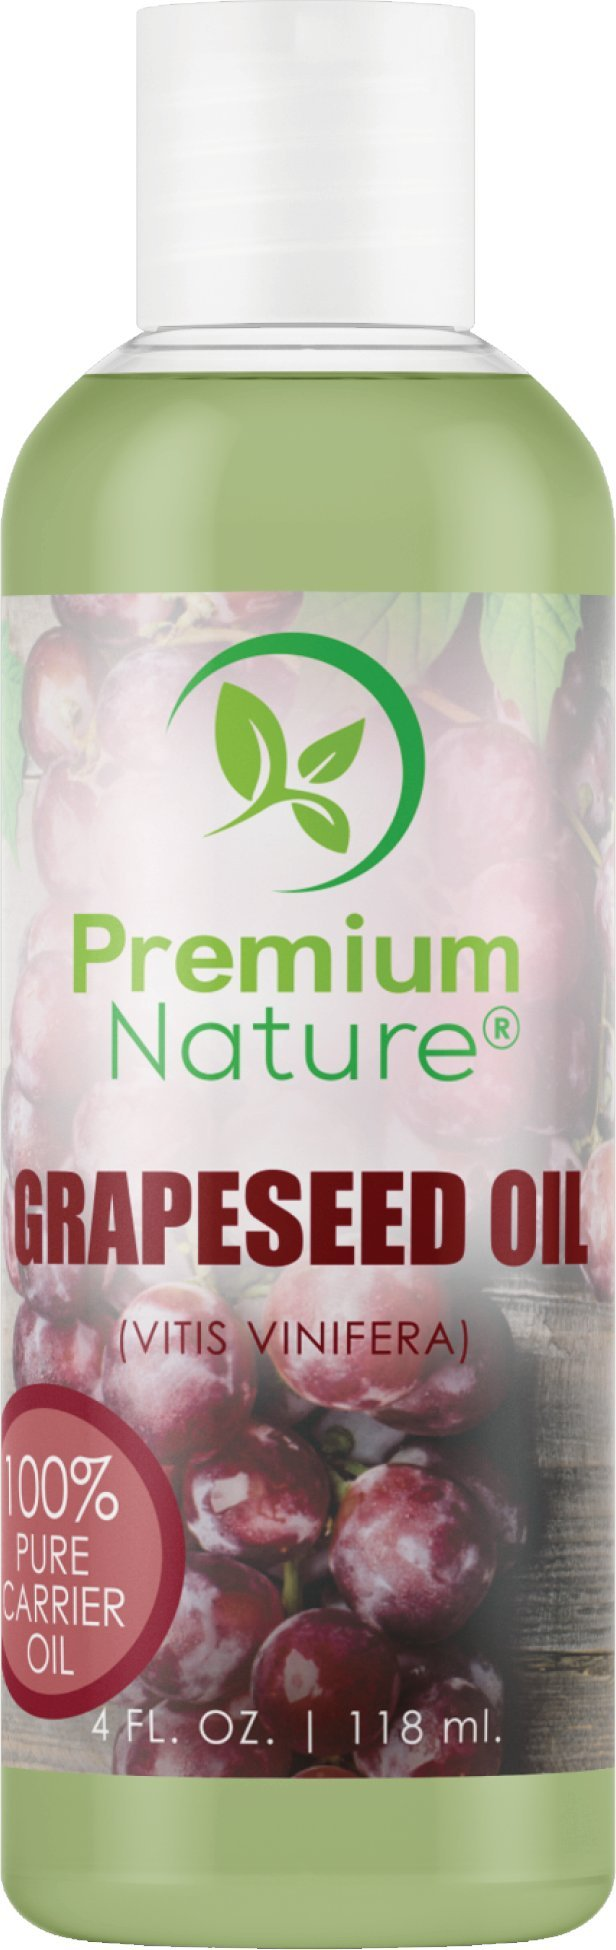 Grapeseed Oil Natural Carrier Oil - 4 oz Light & Silky Moisturizer Rich In Omega Fatty Acids Prevents Premature Aging Suits All Skin Types - for Skin Hair & Nails Premium Nature